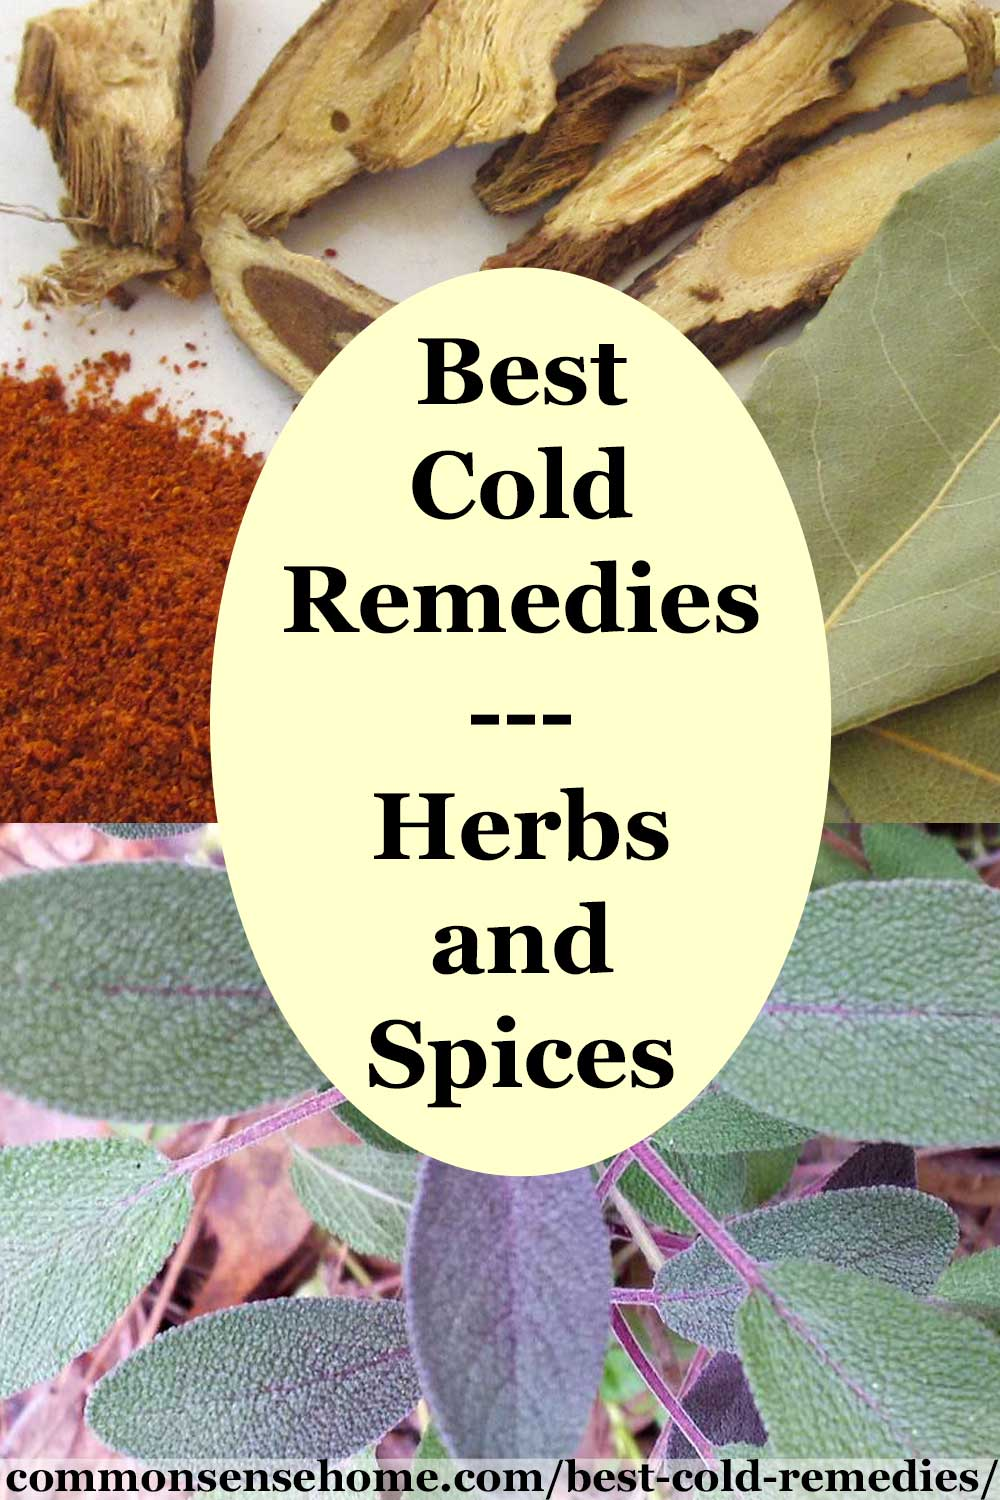 "Black text on yellow background ""Best Cold Remedies - Herbs and Spices"", surrounded by cold fighting herbs and spices"